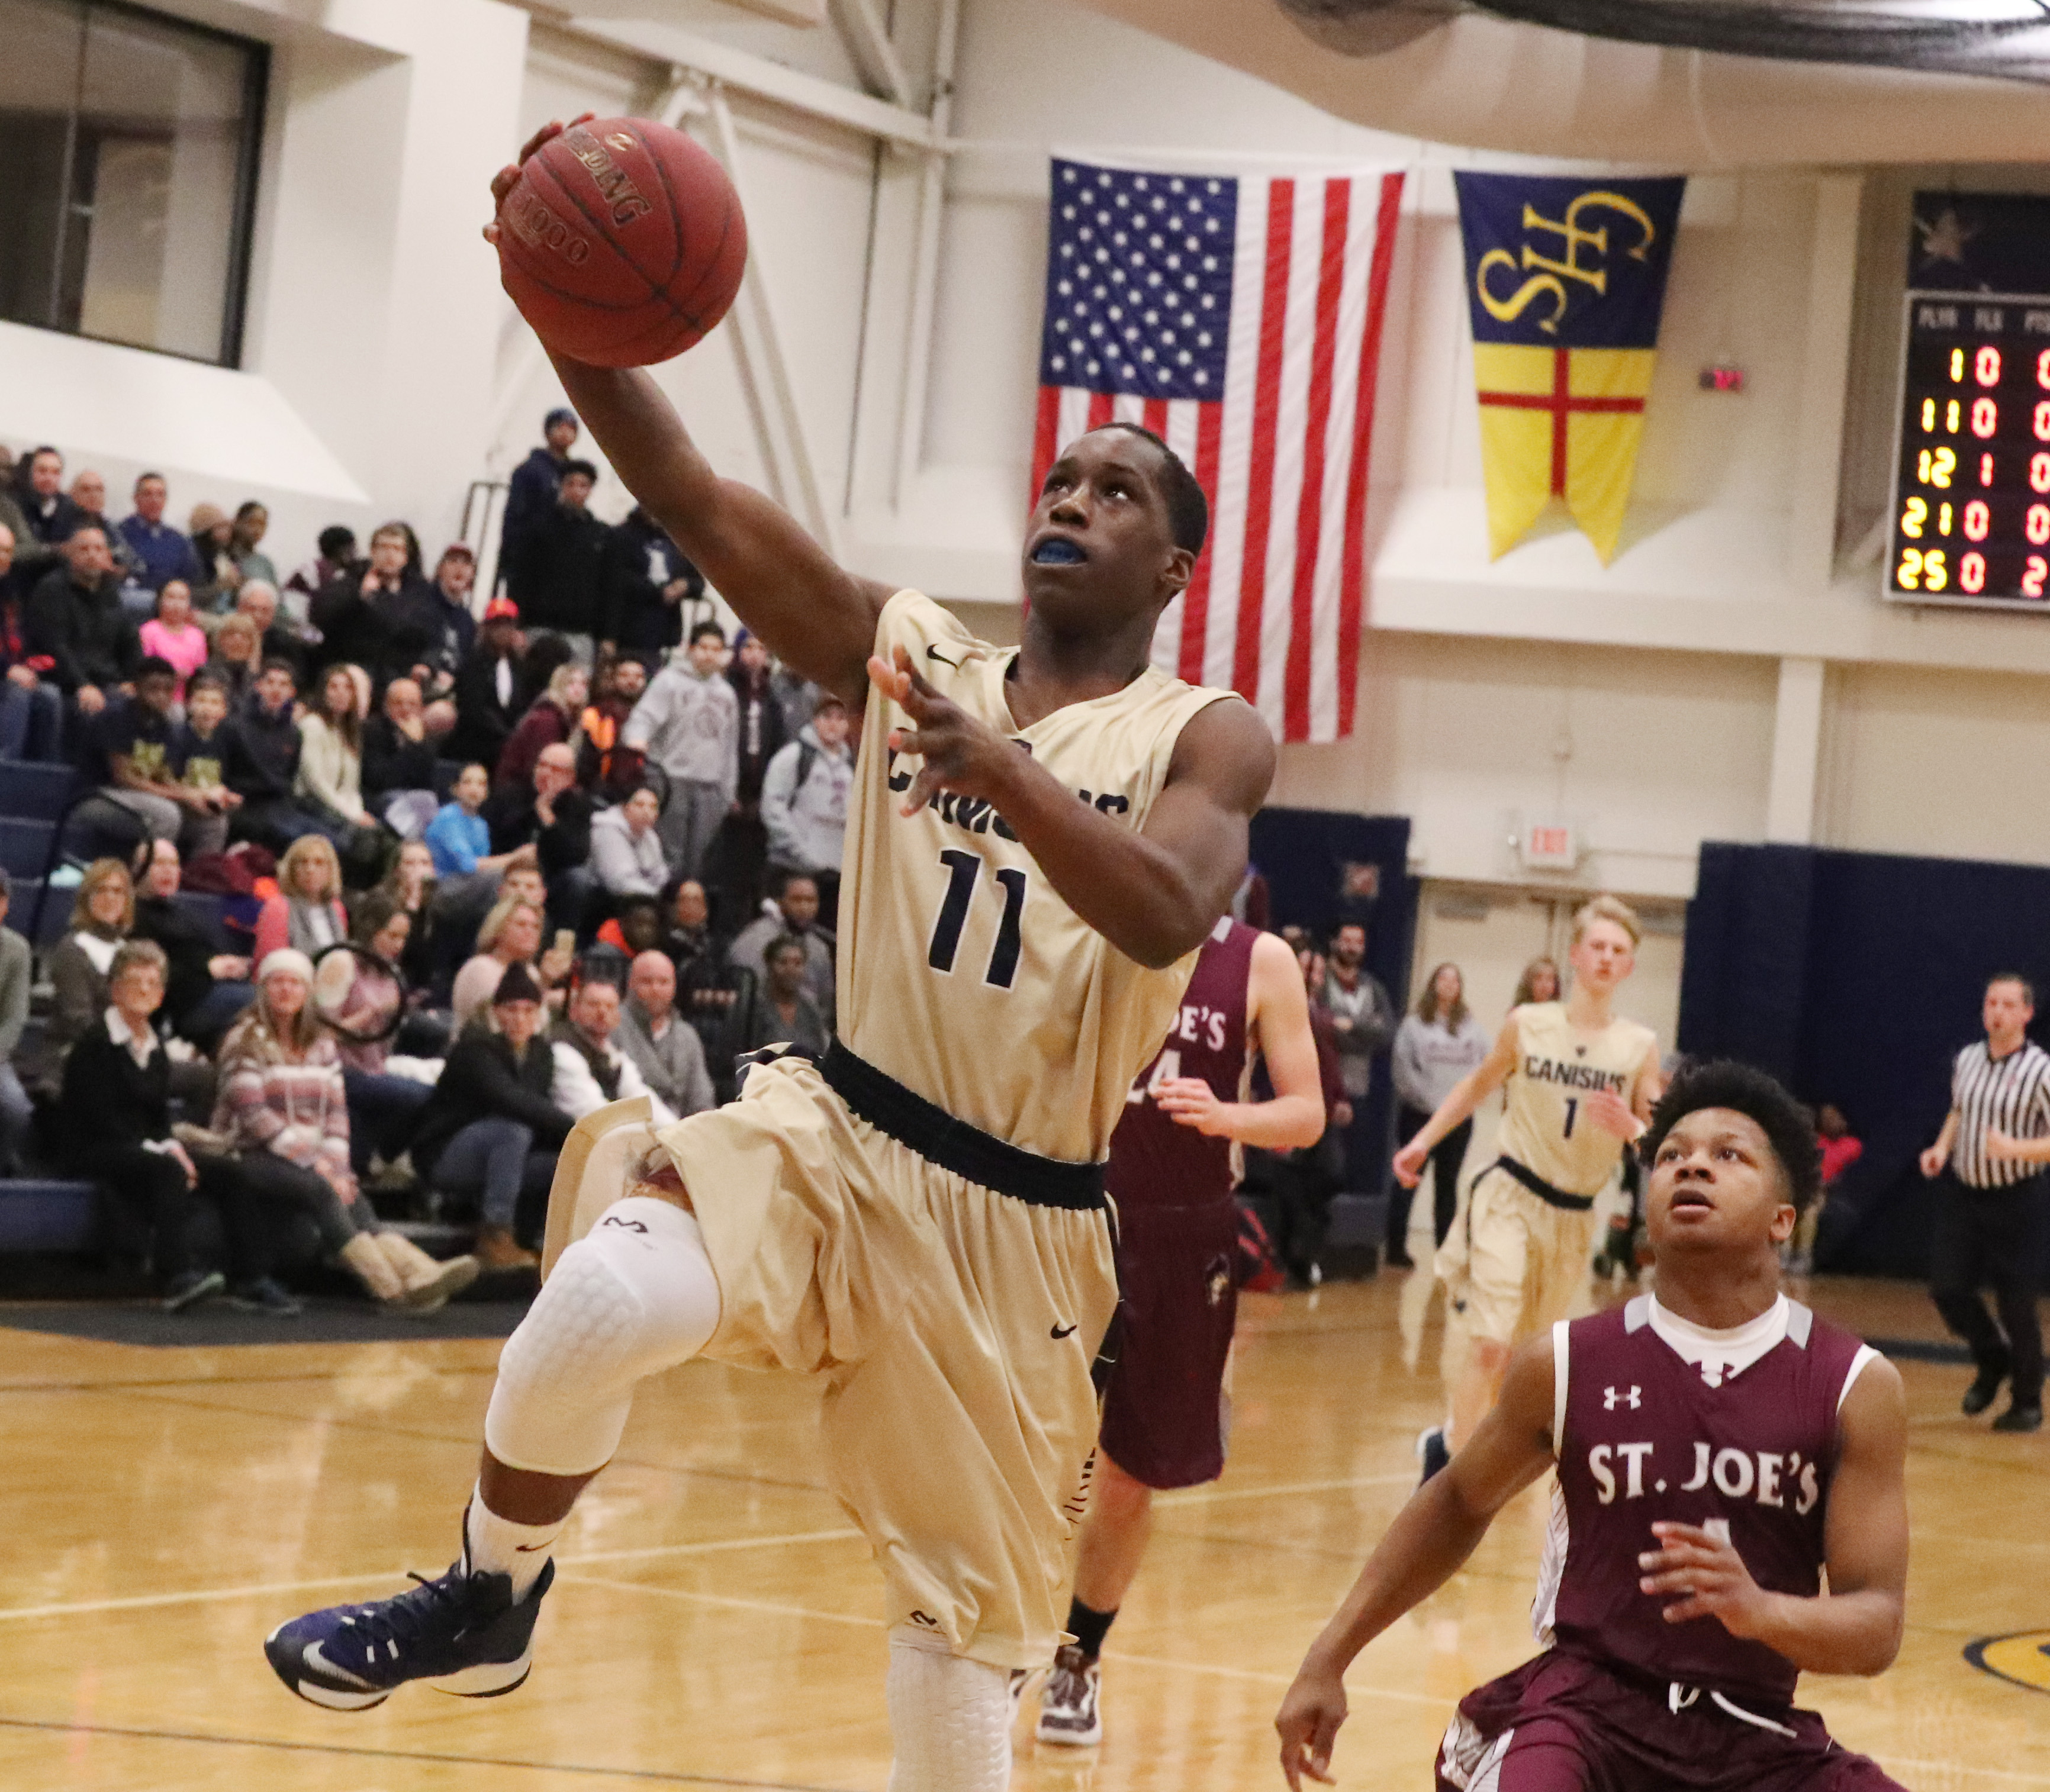 Canisius' Joe Jamison score an easy basket over St. Joe's Naseer Jackson in the second quarter of Friday's game. (James P. McCoy/Buffalo News)